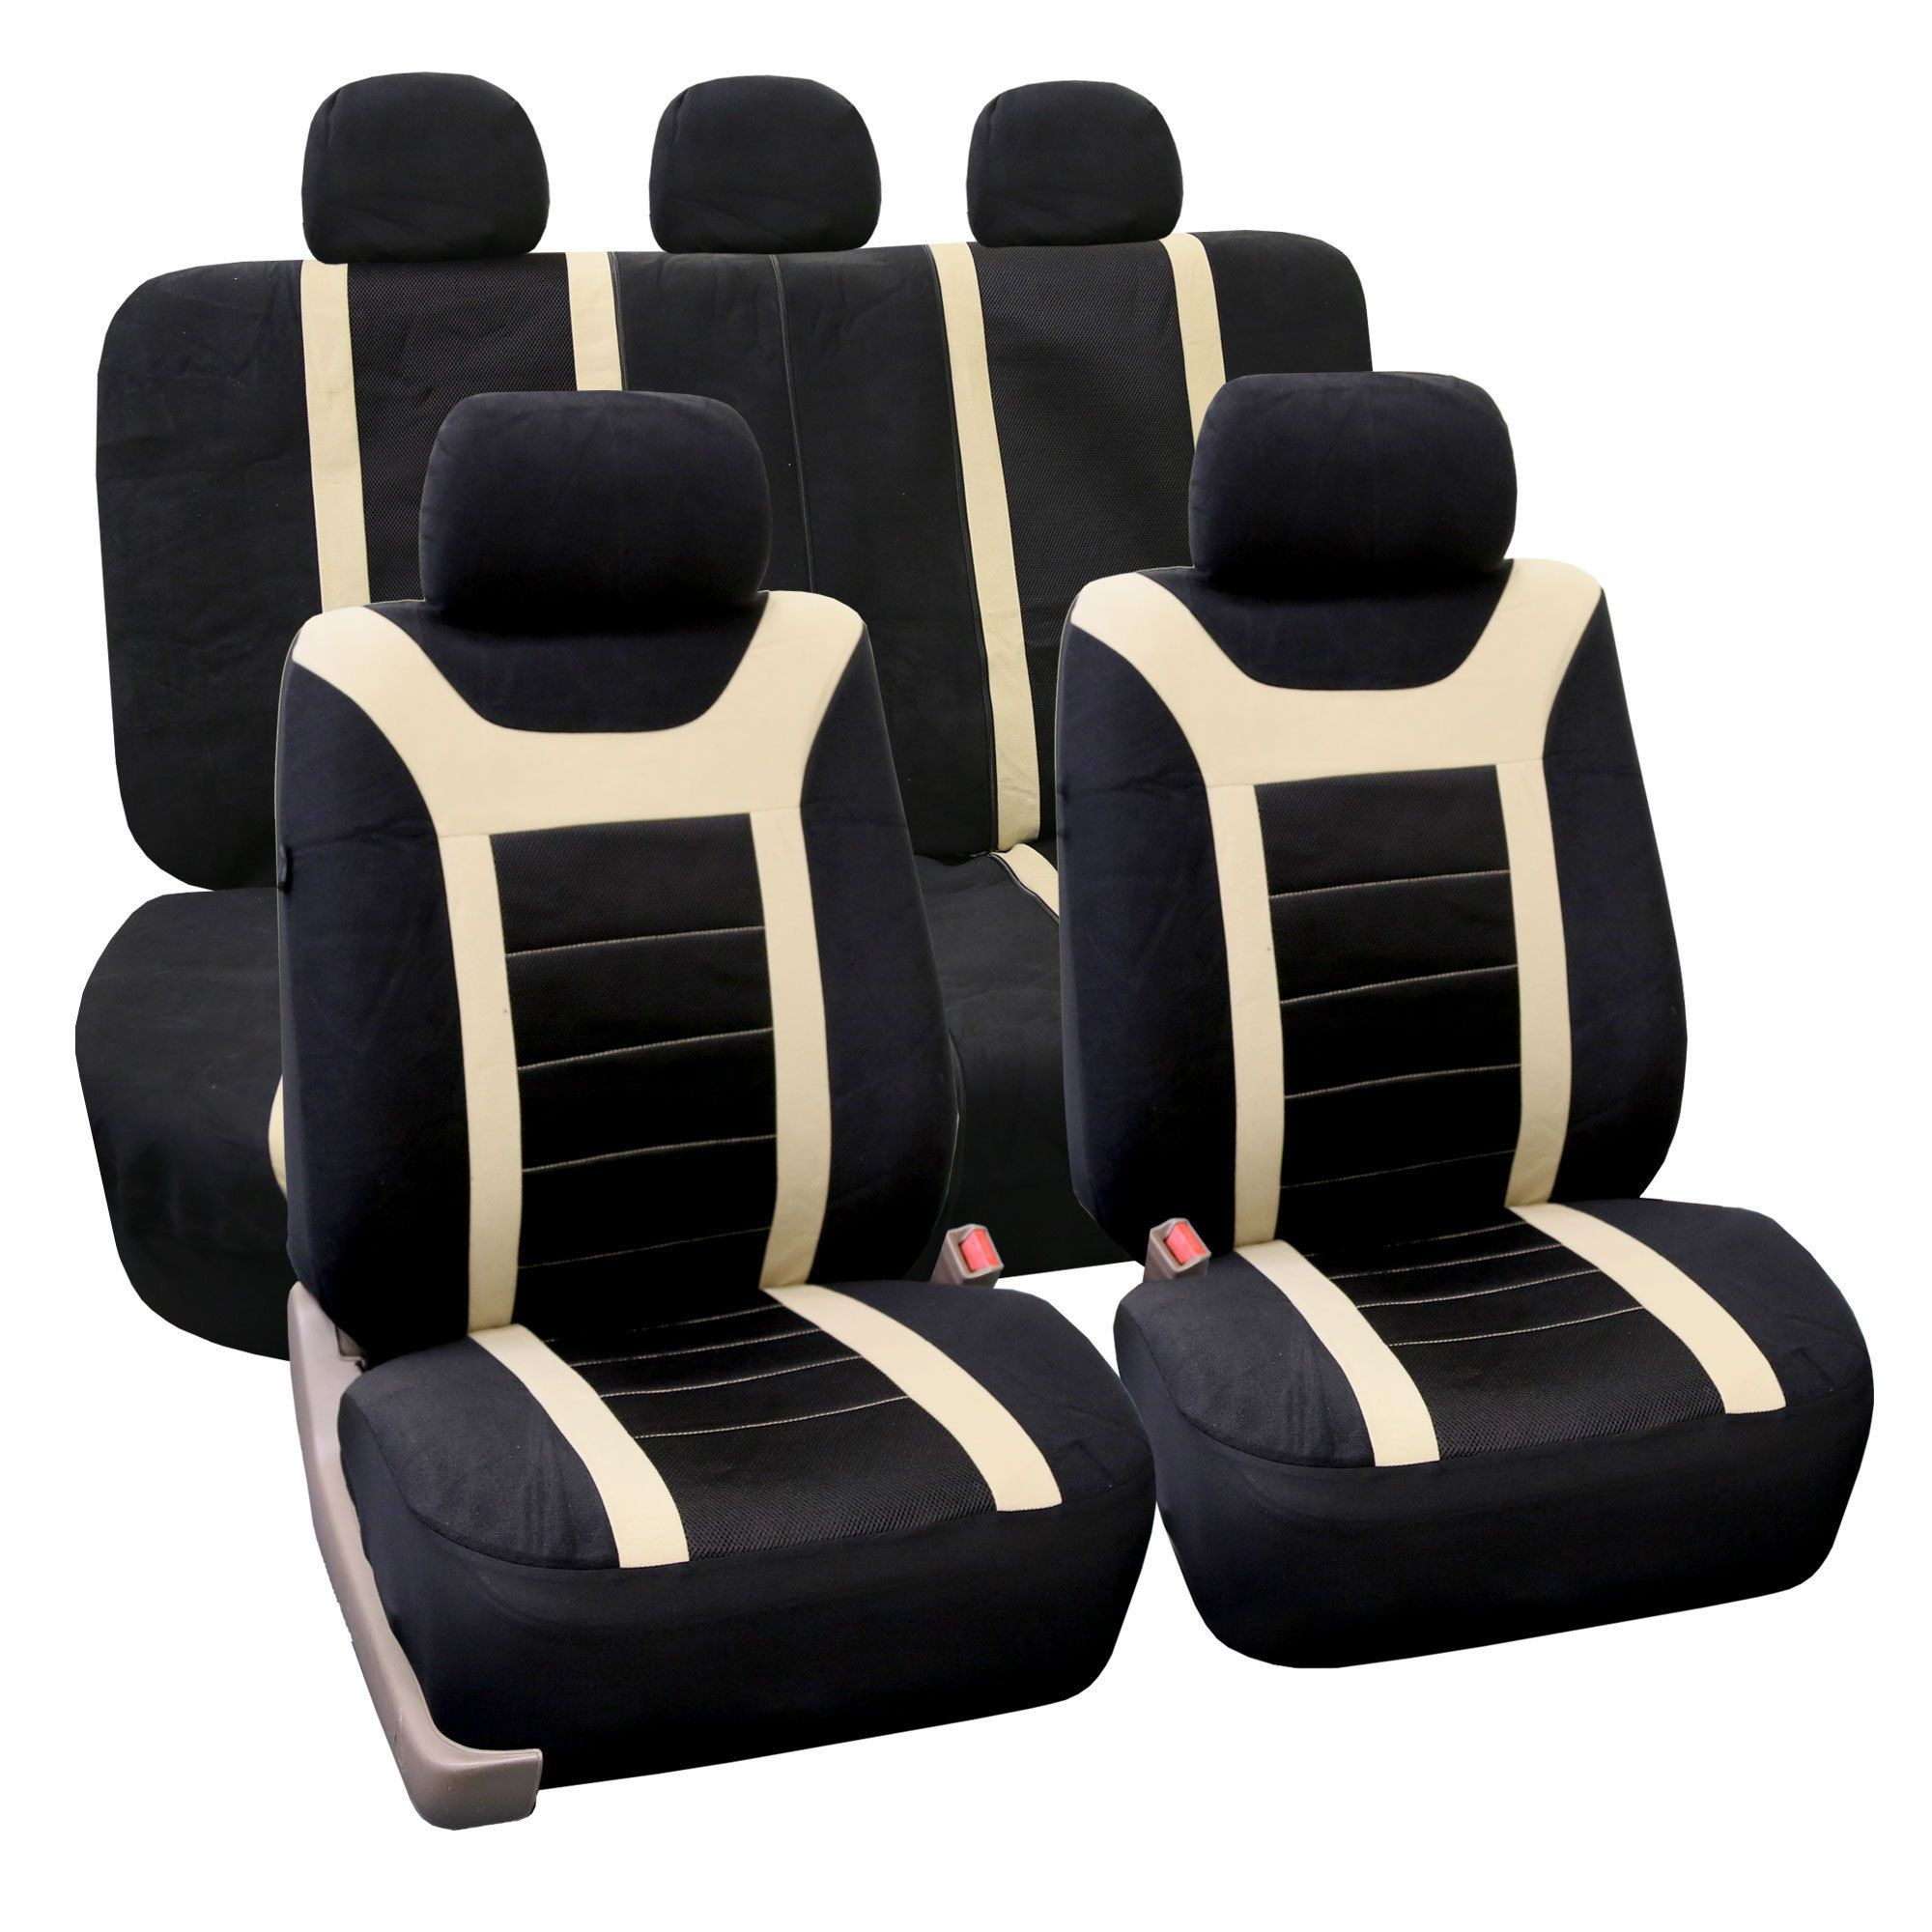 FH Group Sports Seat Covers Airbag Compatible And Rear Split Full Set Grey In Accessories